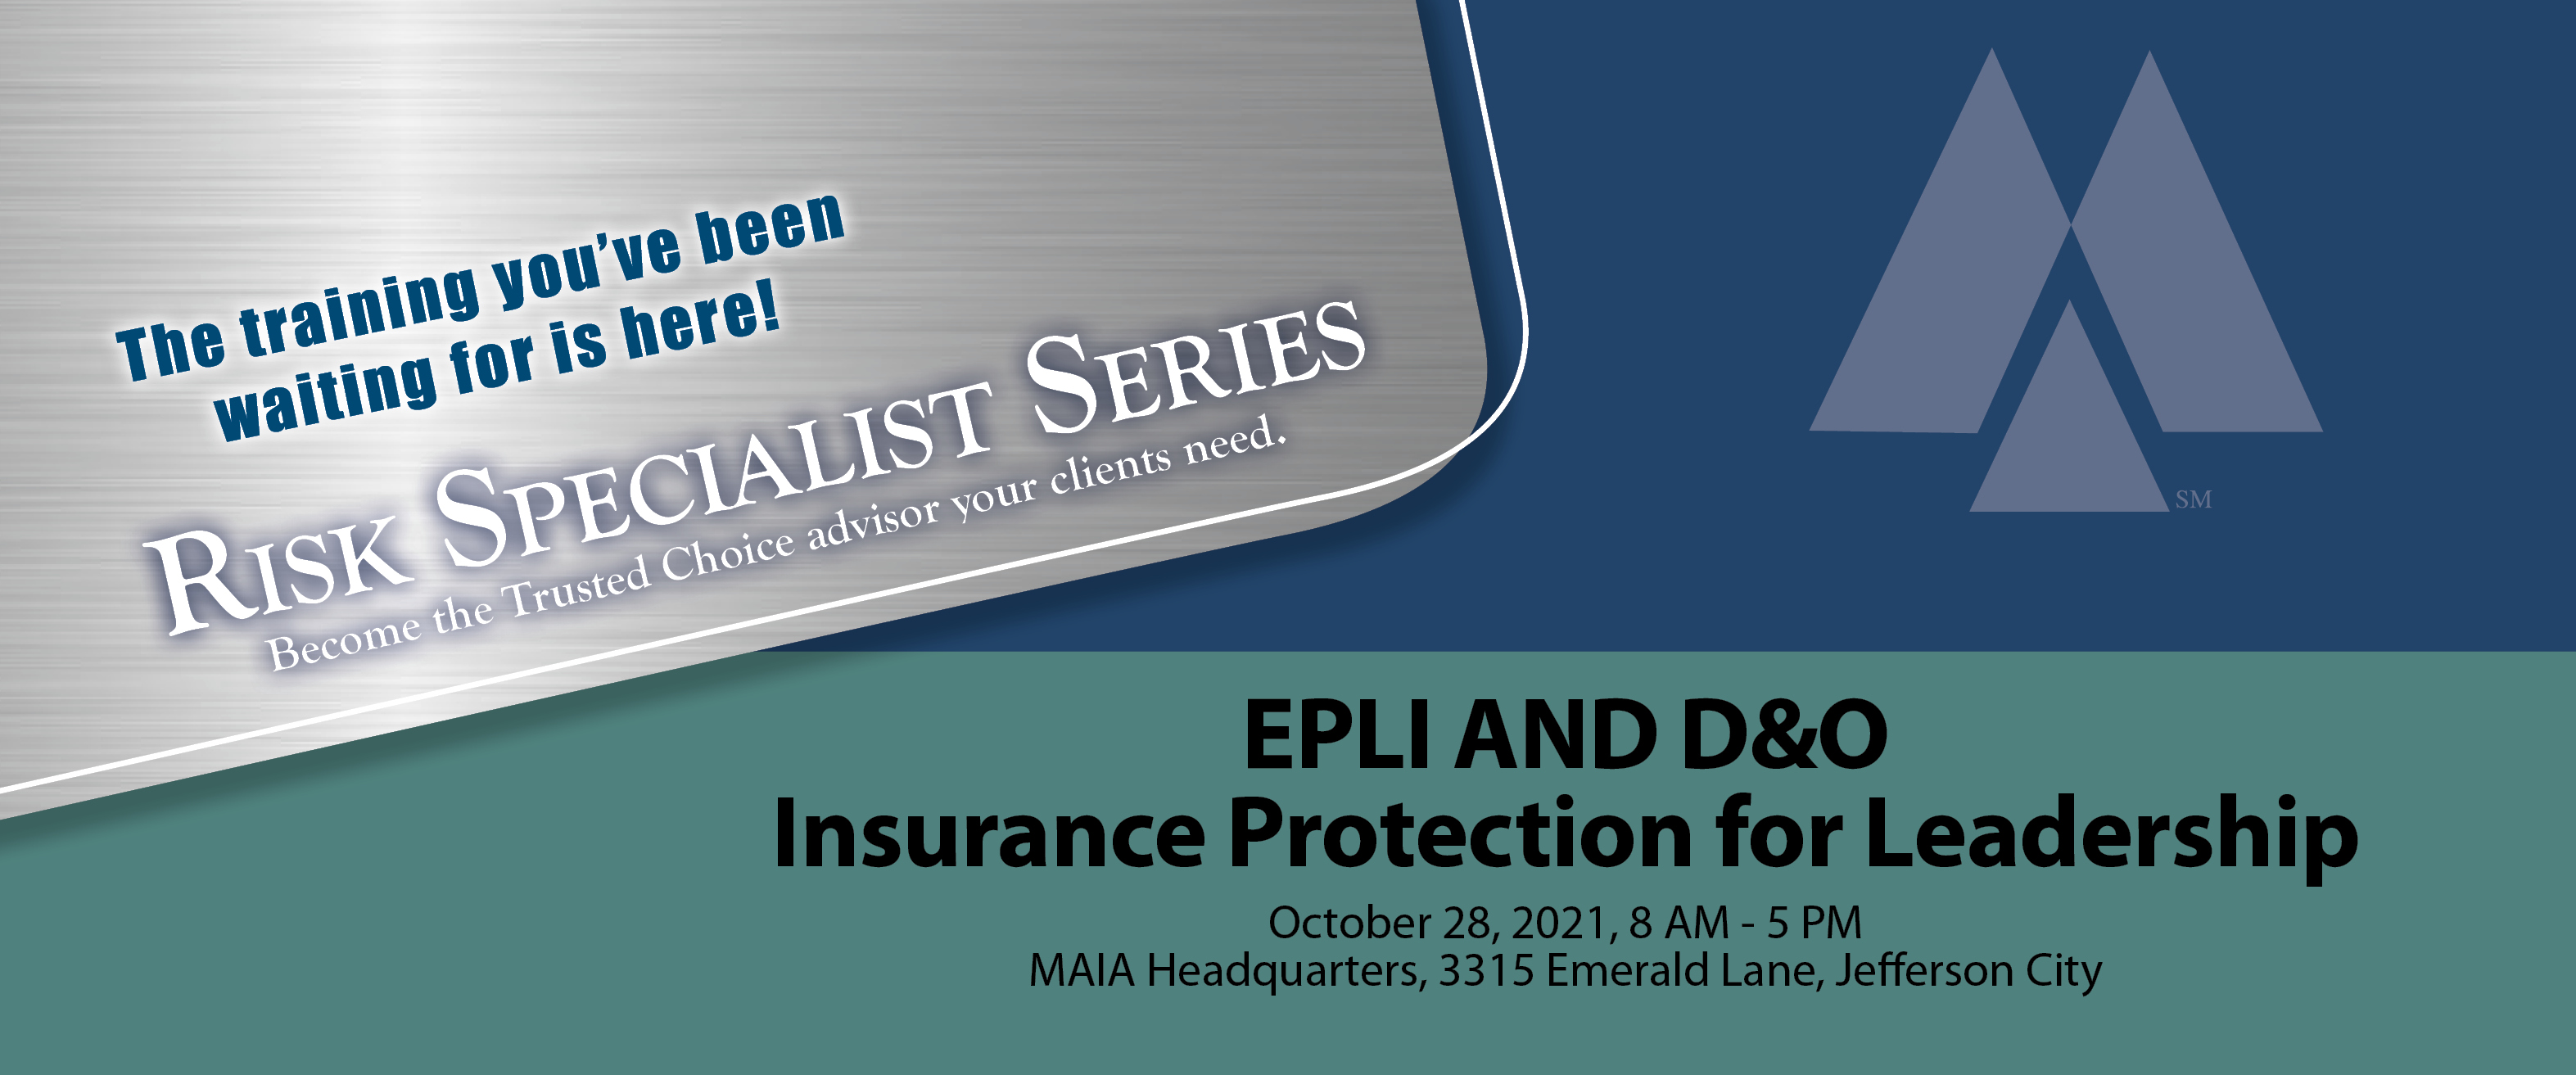 Risk Specialist Series: EPLI and D&O Insurance Protection for Leadership